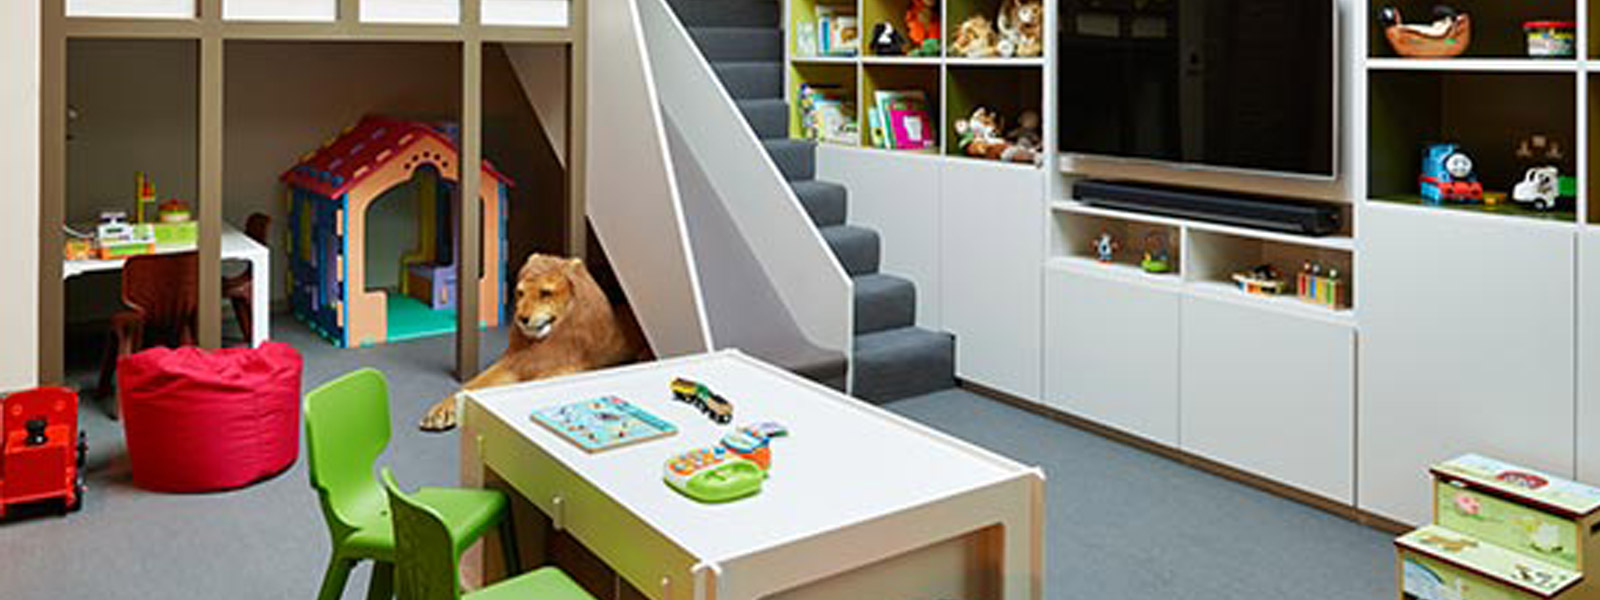 Ensoul designing great kids spaces